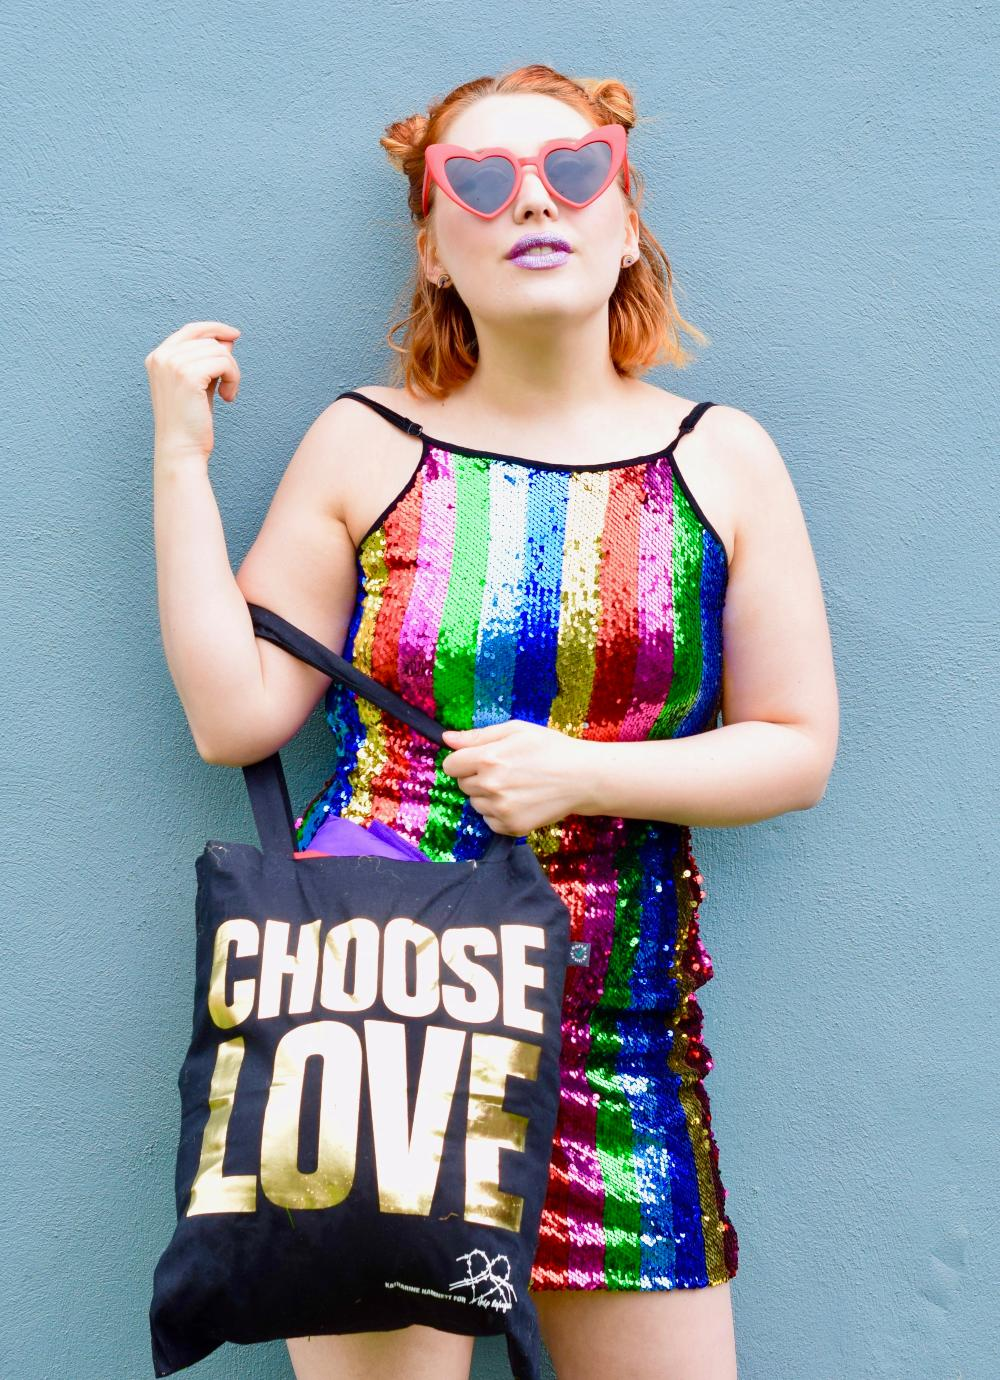 Scottish blogger Styled by Alice wears ASOS Help Refugees with Katherine Hamnett ethical Pride tote bag and rainbow sequin dress